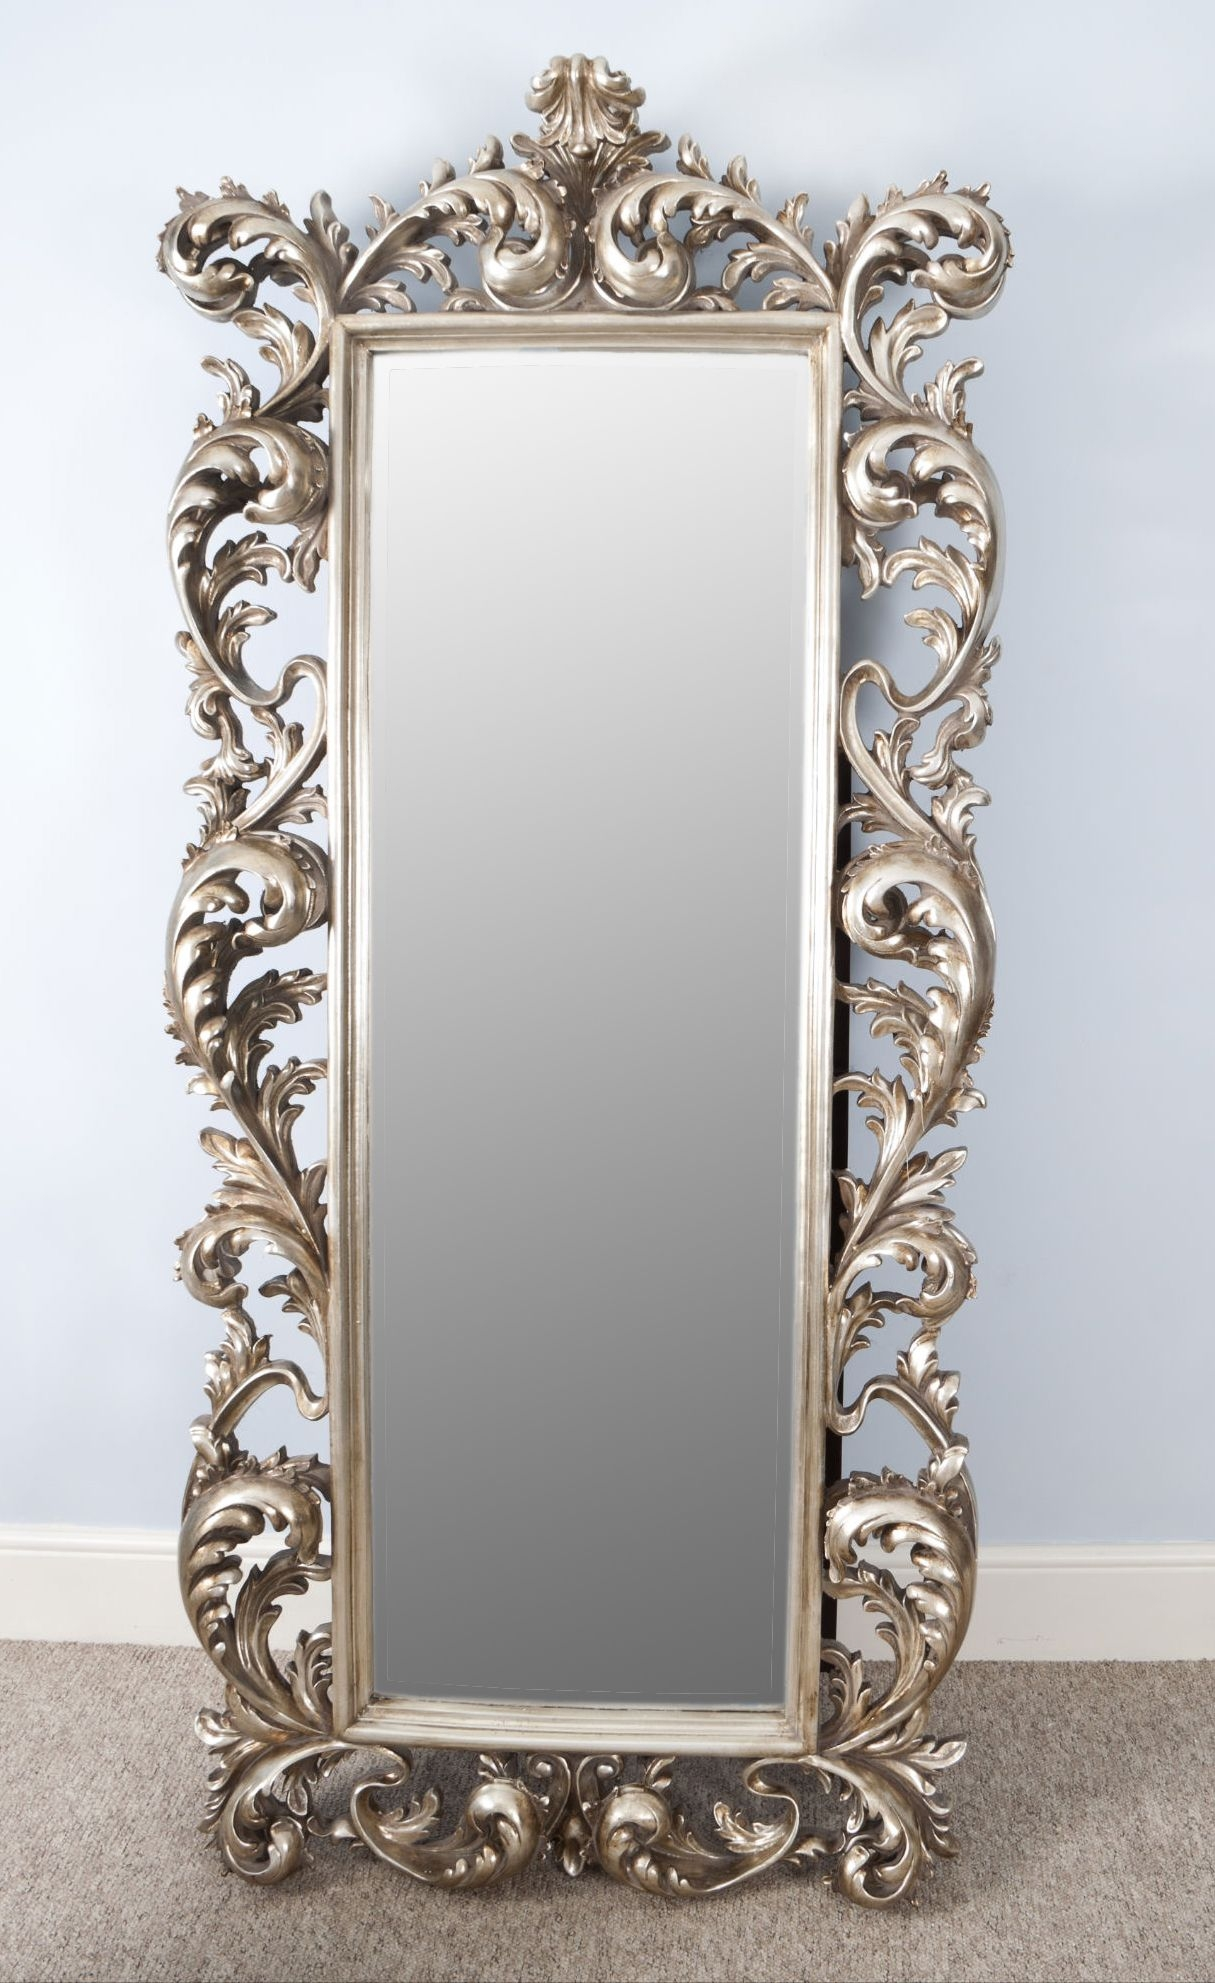 Wondrous Old Oval Mirror Antique Cheval Wall Mirror Likewise Grey Throughout Old Fashioned Mirrors For Sale (View 8 of 15)